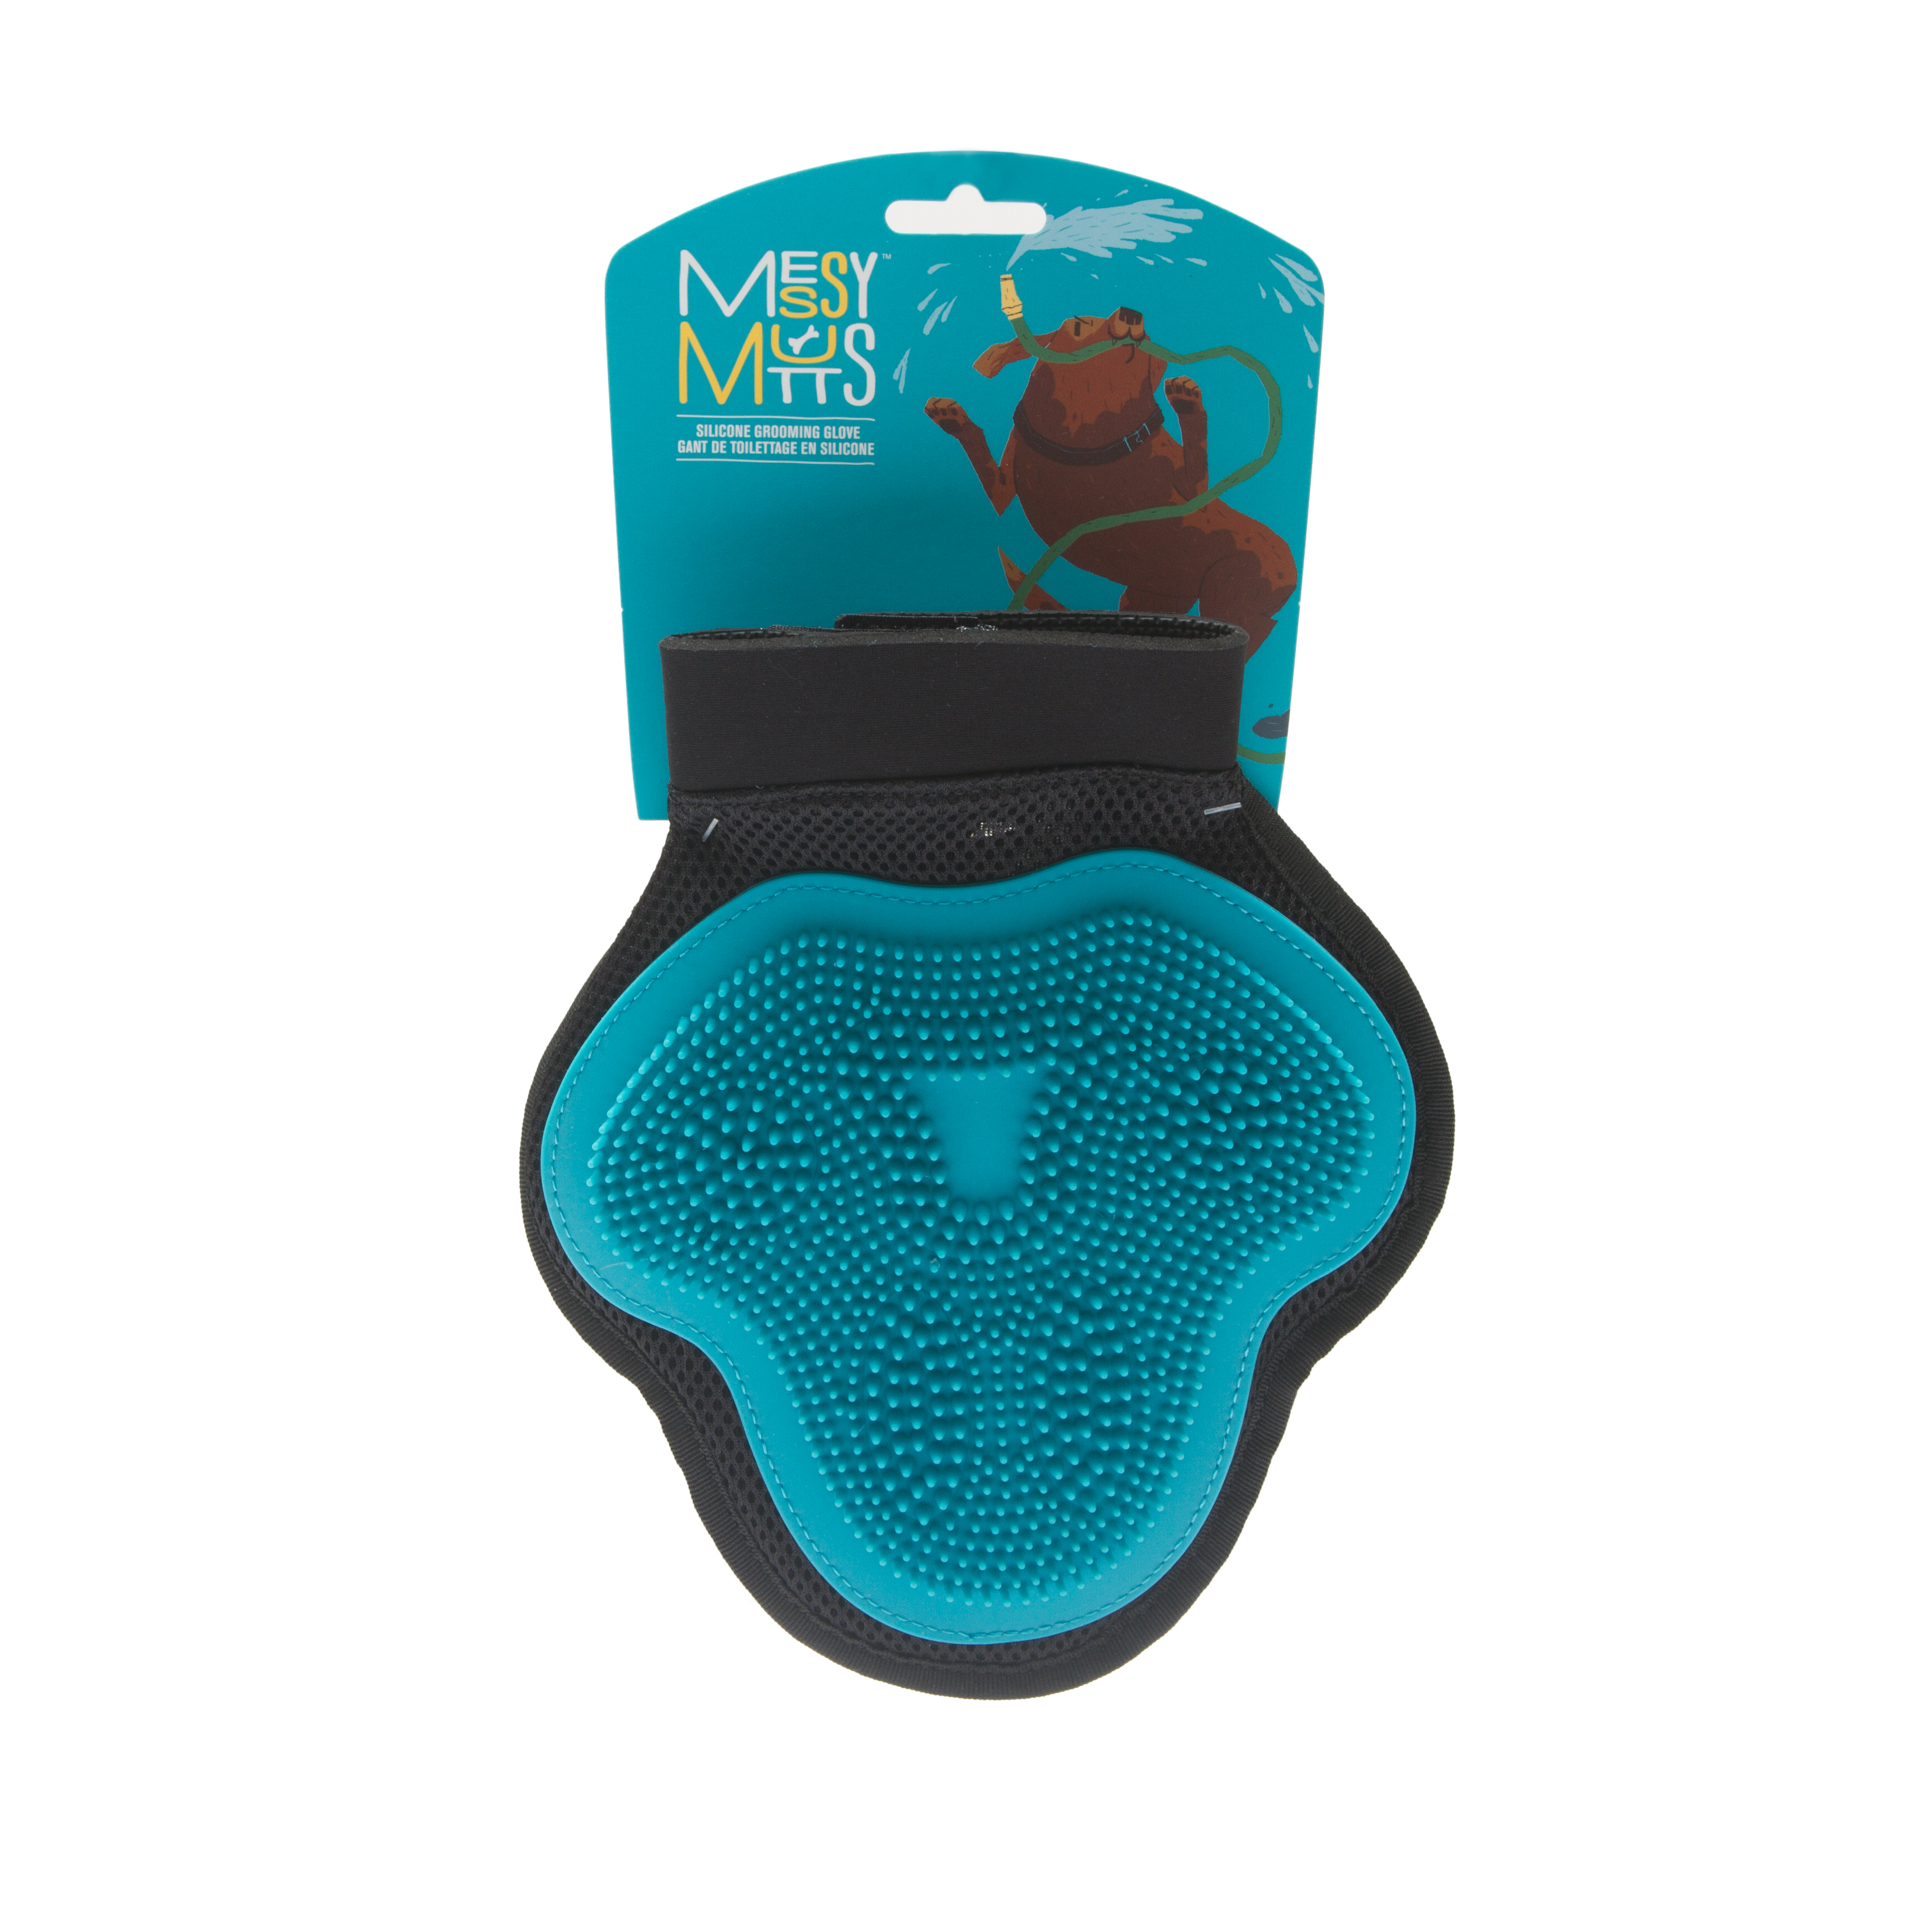 Messy Mutts Silicone Grooming Glove, Blue